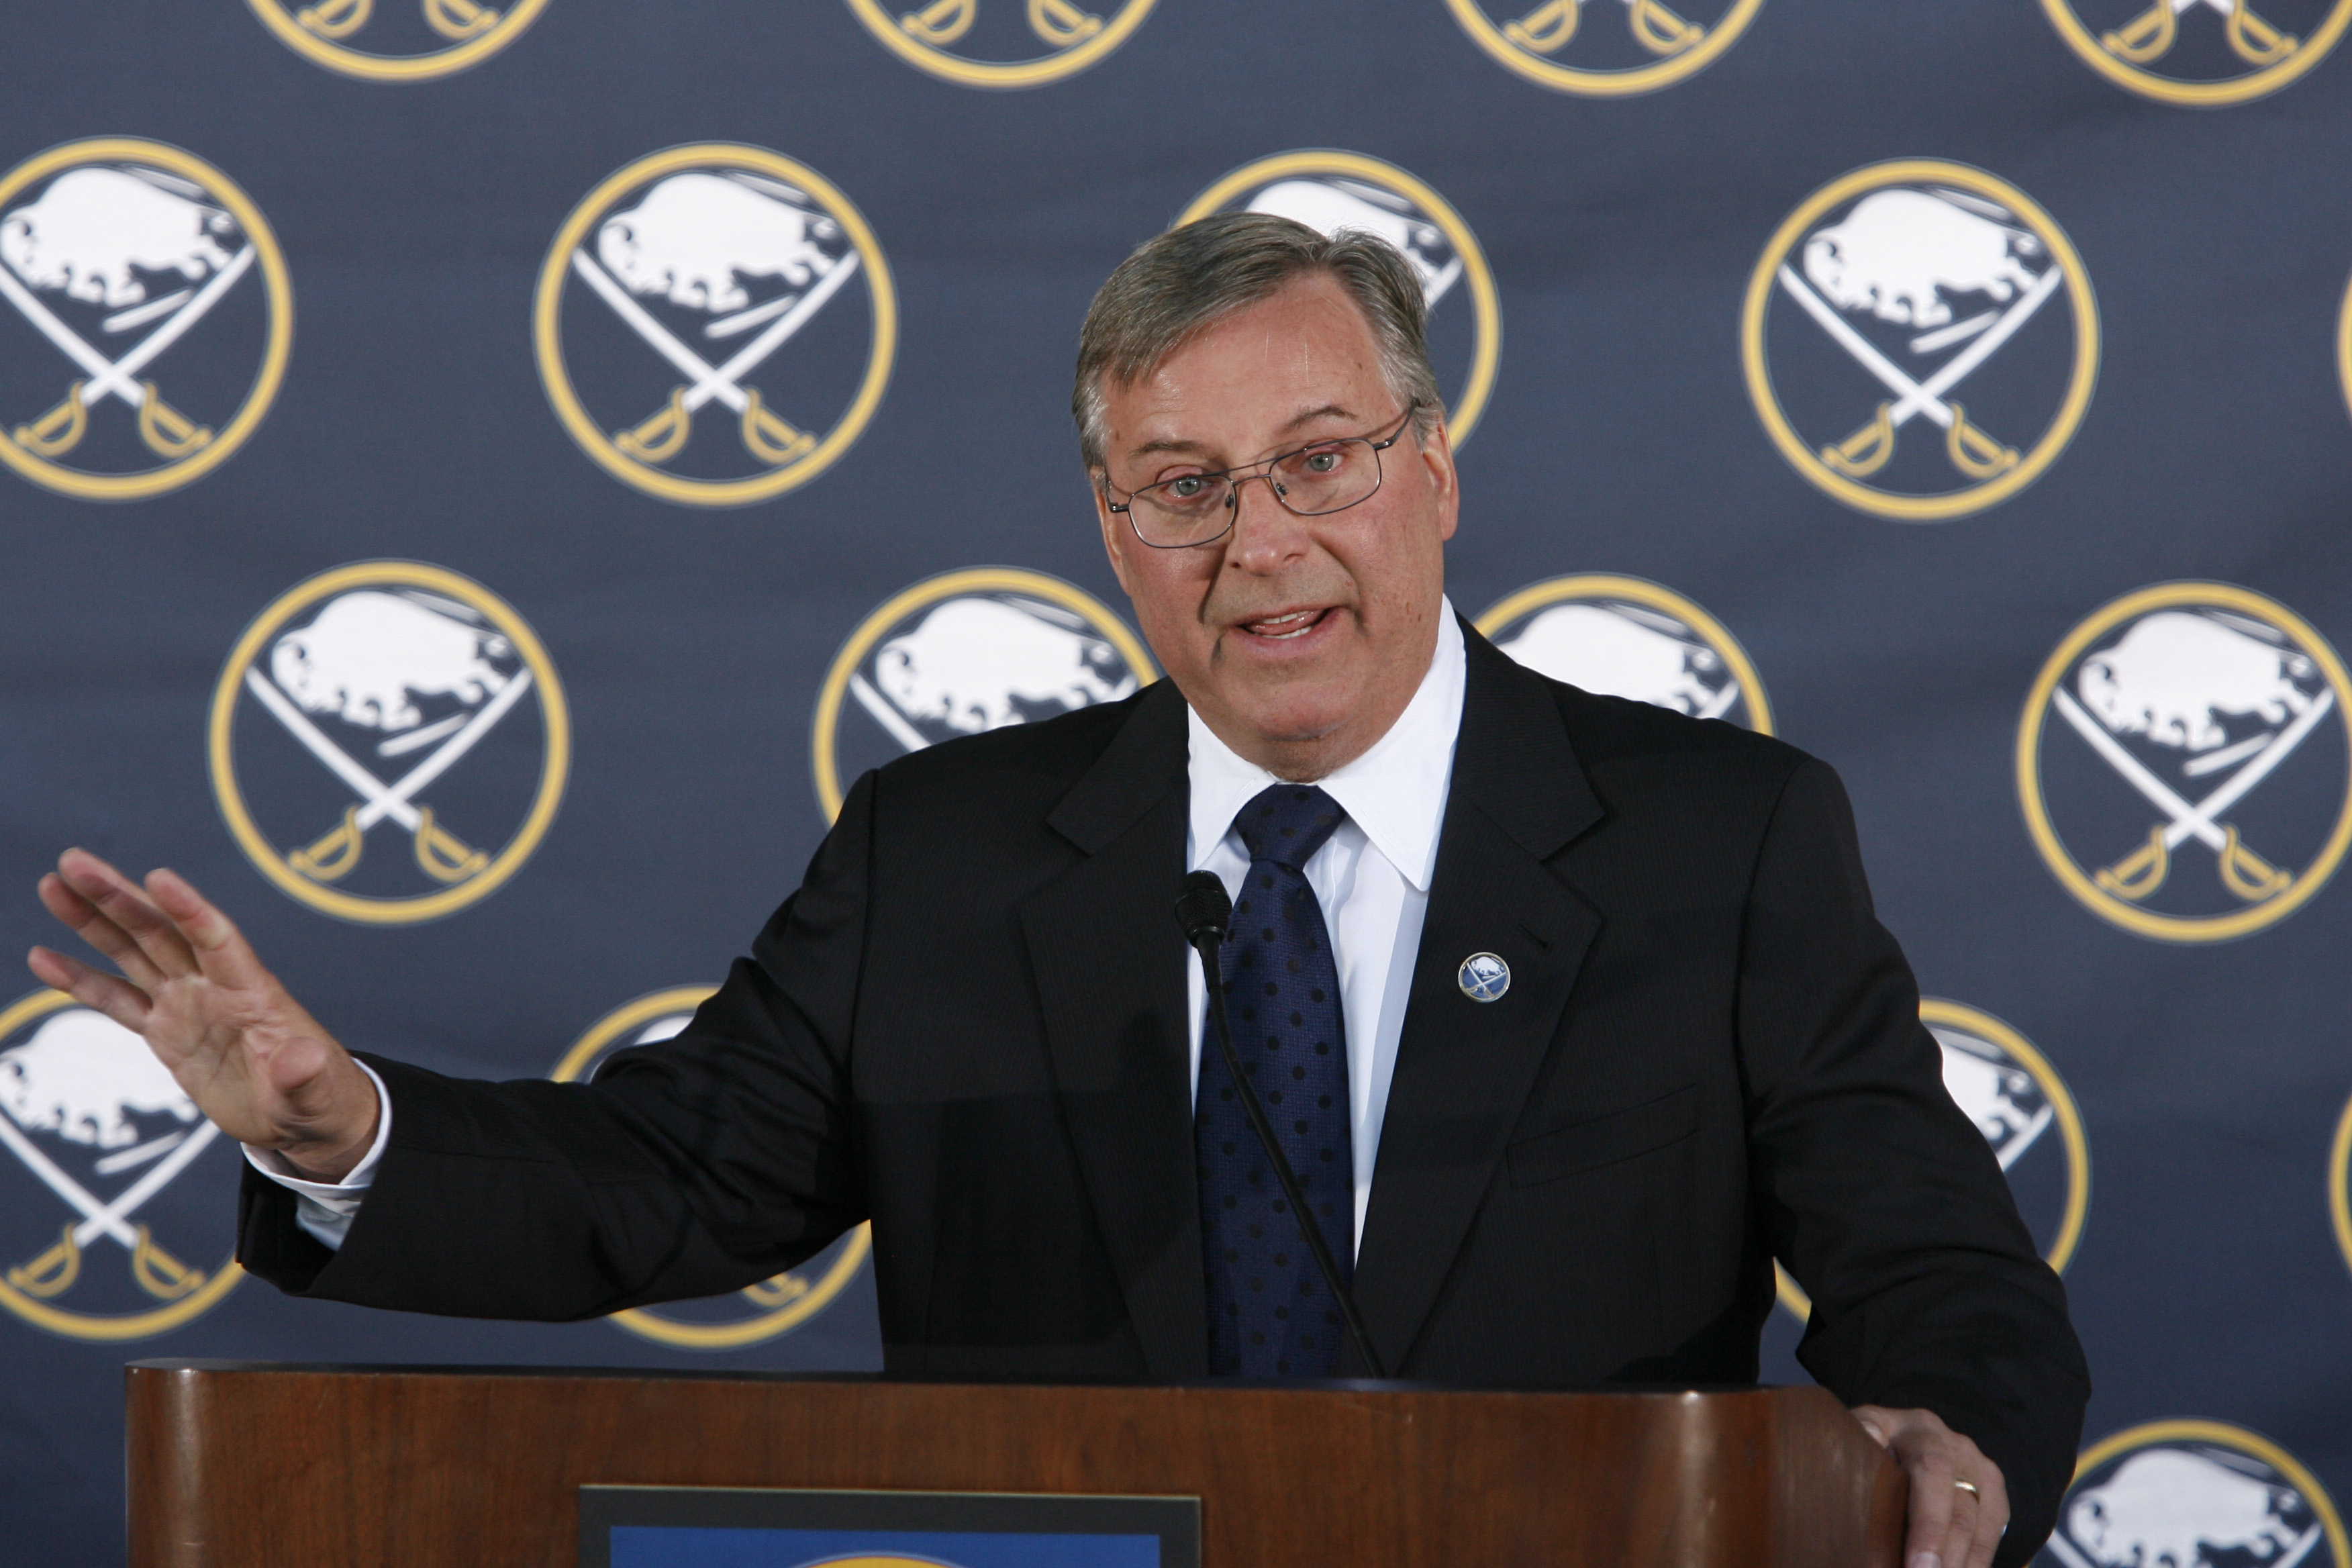 Terry Pegula, pictured on the day he was officially introduced as the new owner of the Buffalo Sabres: Feb. 22, 2011. (James P. McCoy/Buffalo News)